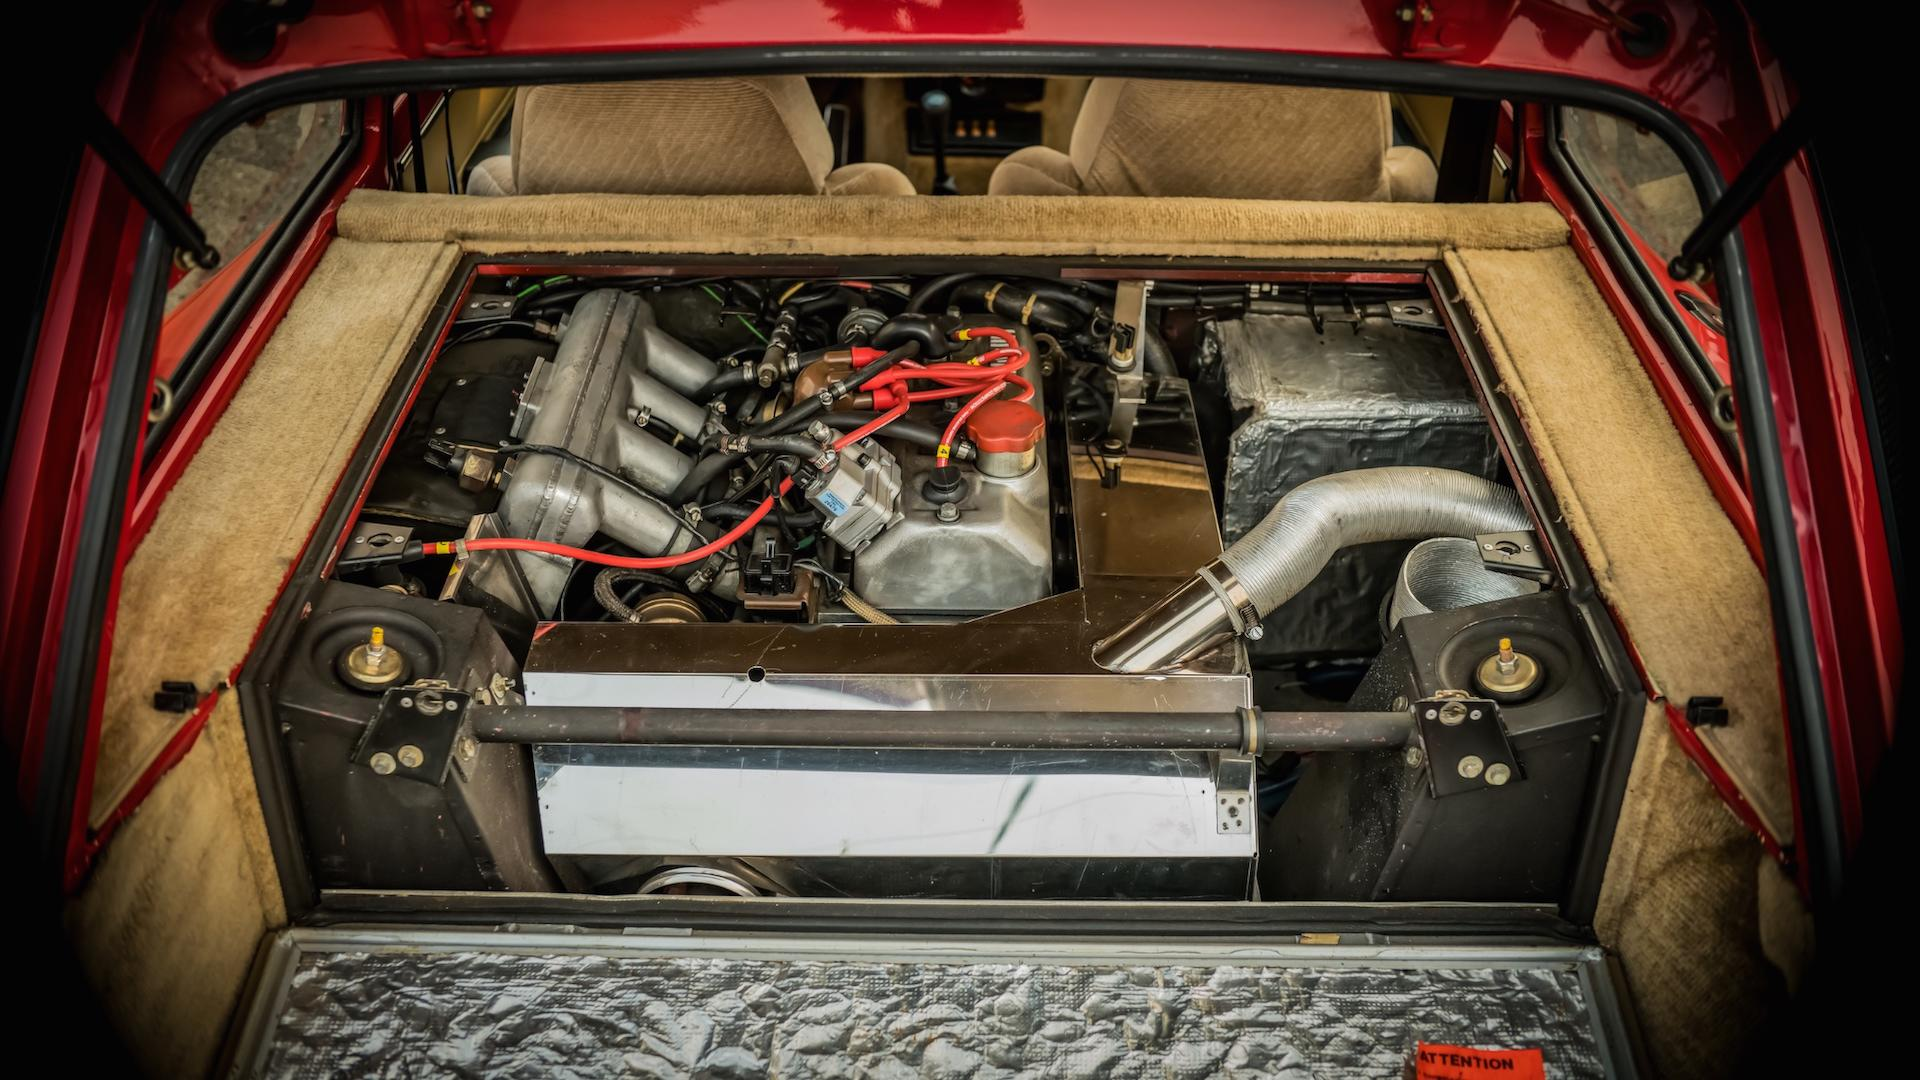 Renault_5_Turbo_2_Evo_59